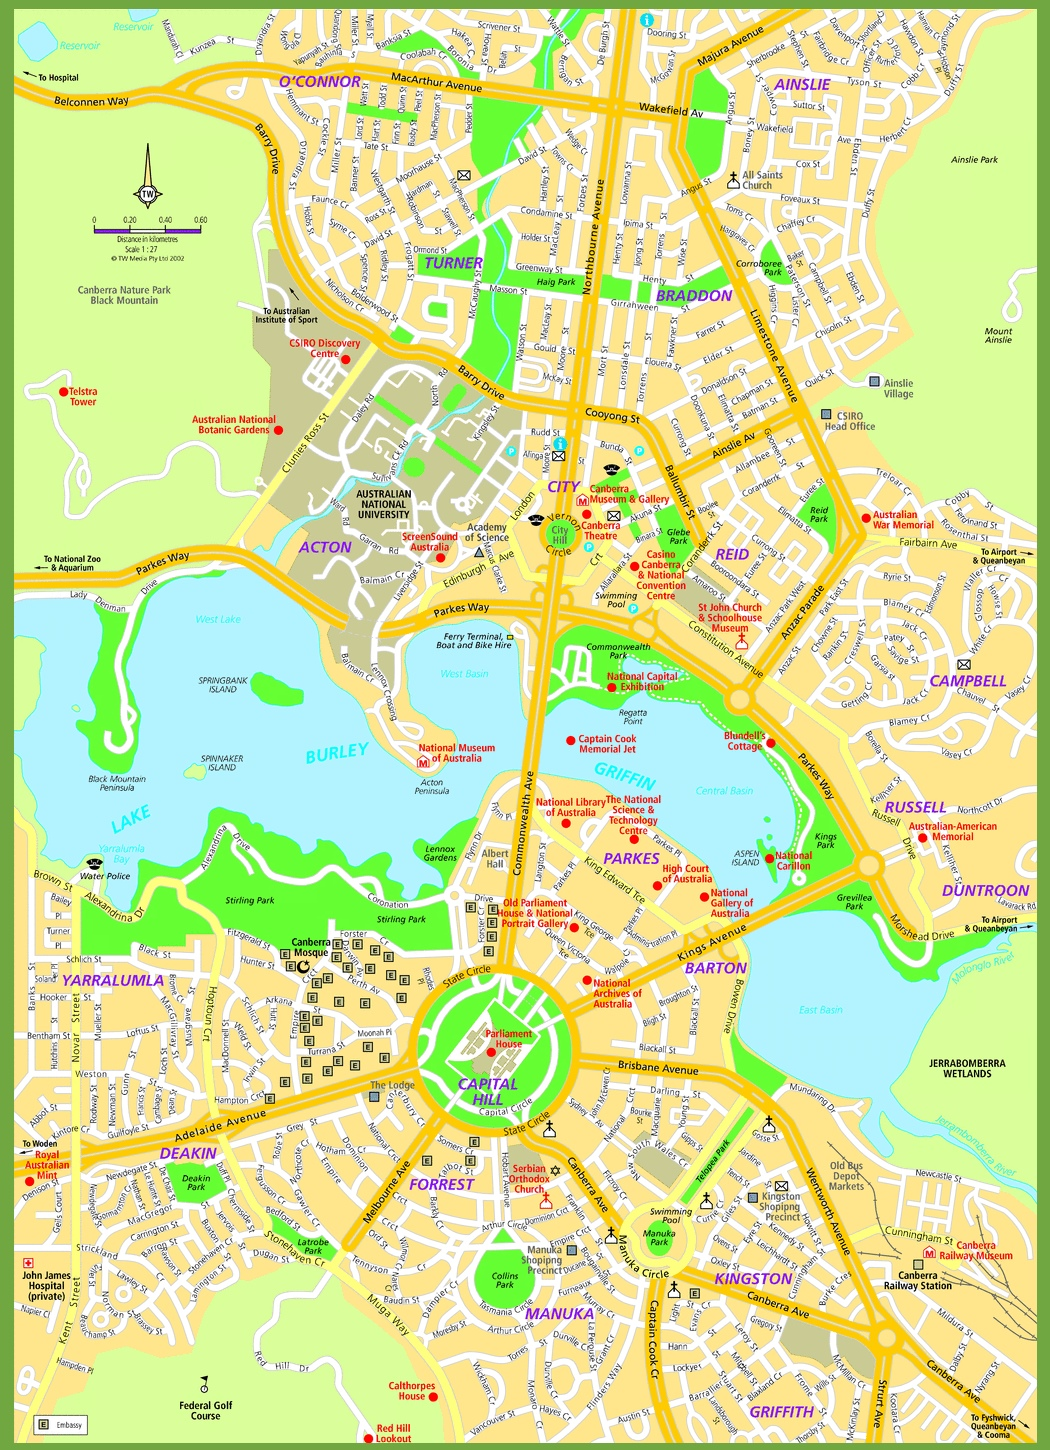 Map Of Canberra Canberra street map Map Of Canberra